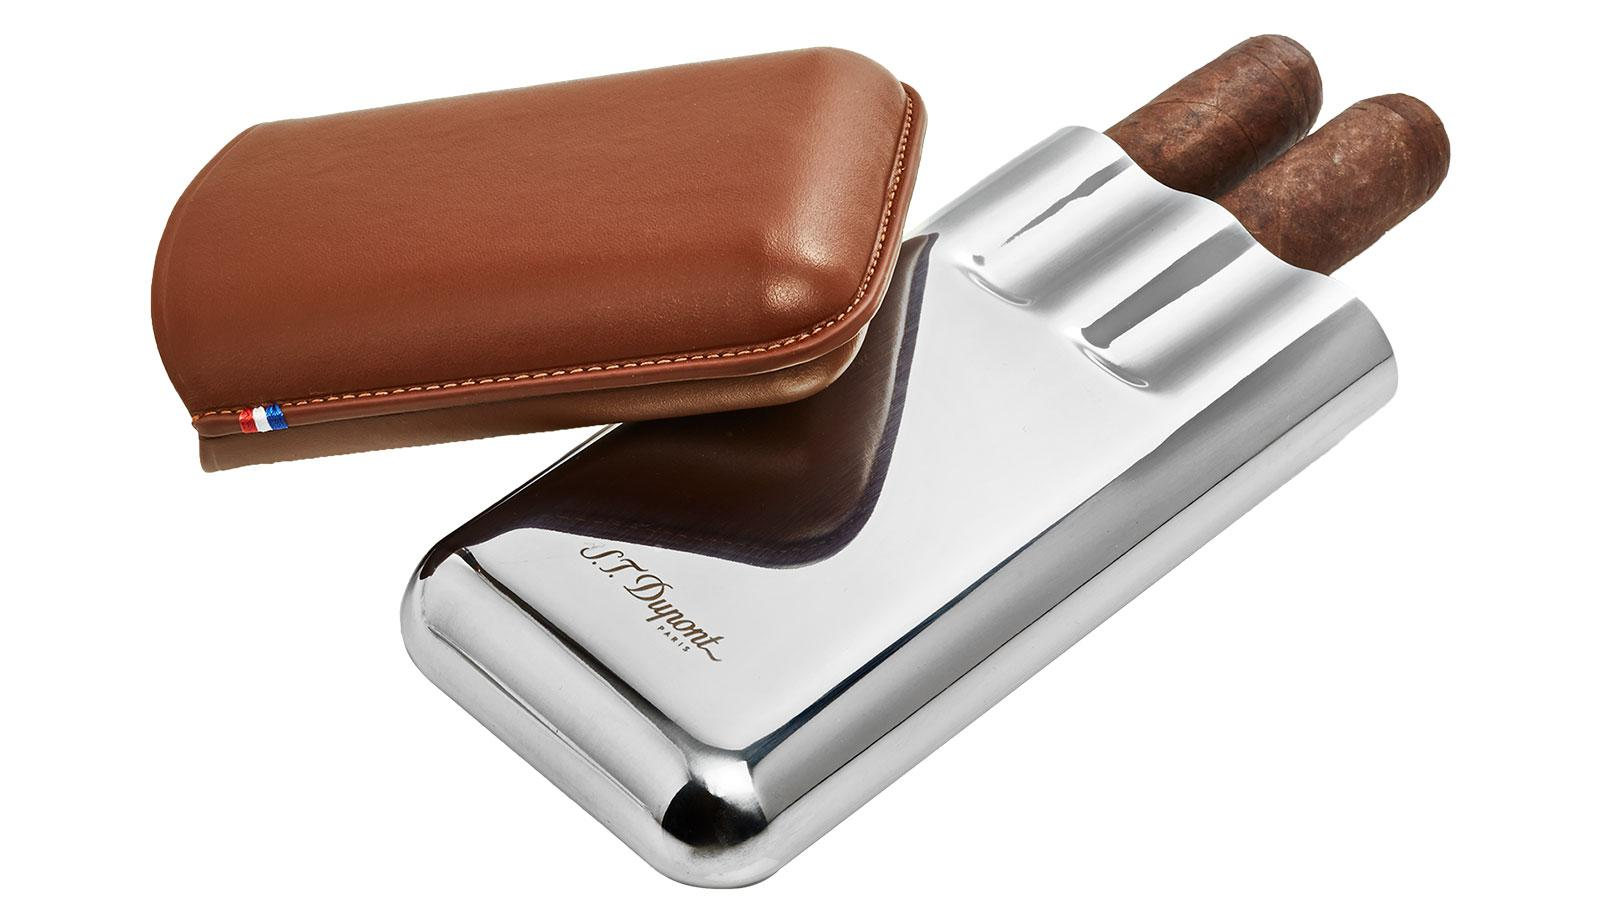 Visually striking and durable, S.T. Dupont's Triple Cigar Case is made from rich brown calfskin and metal.